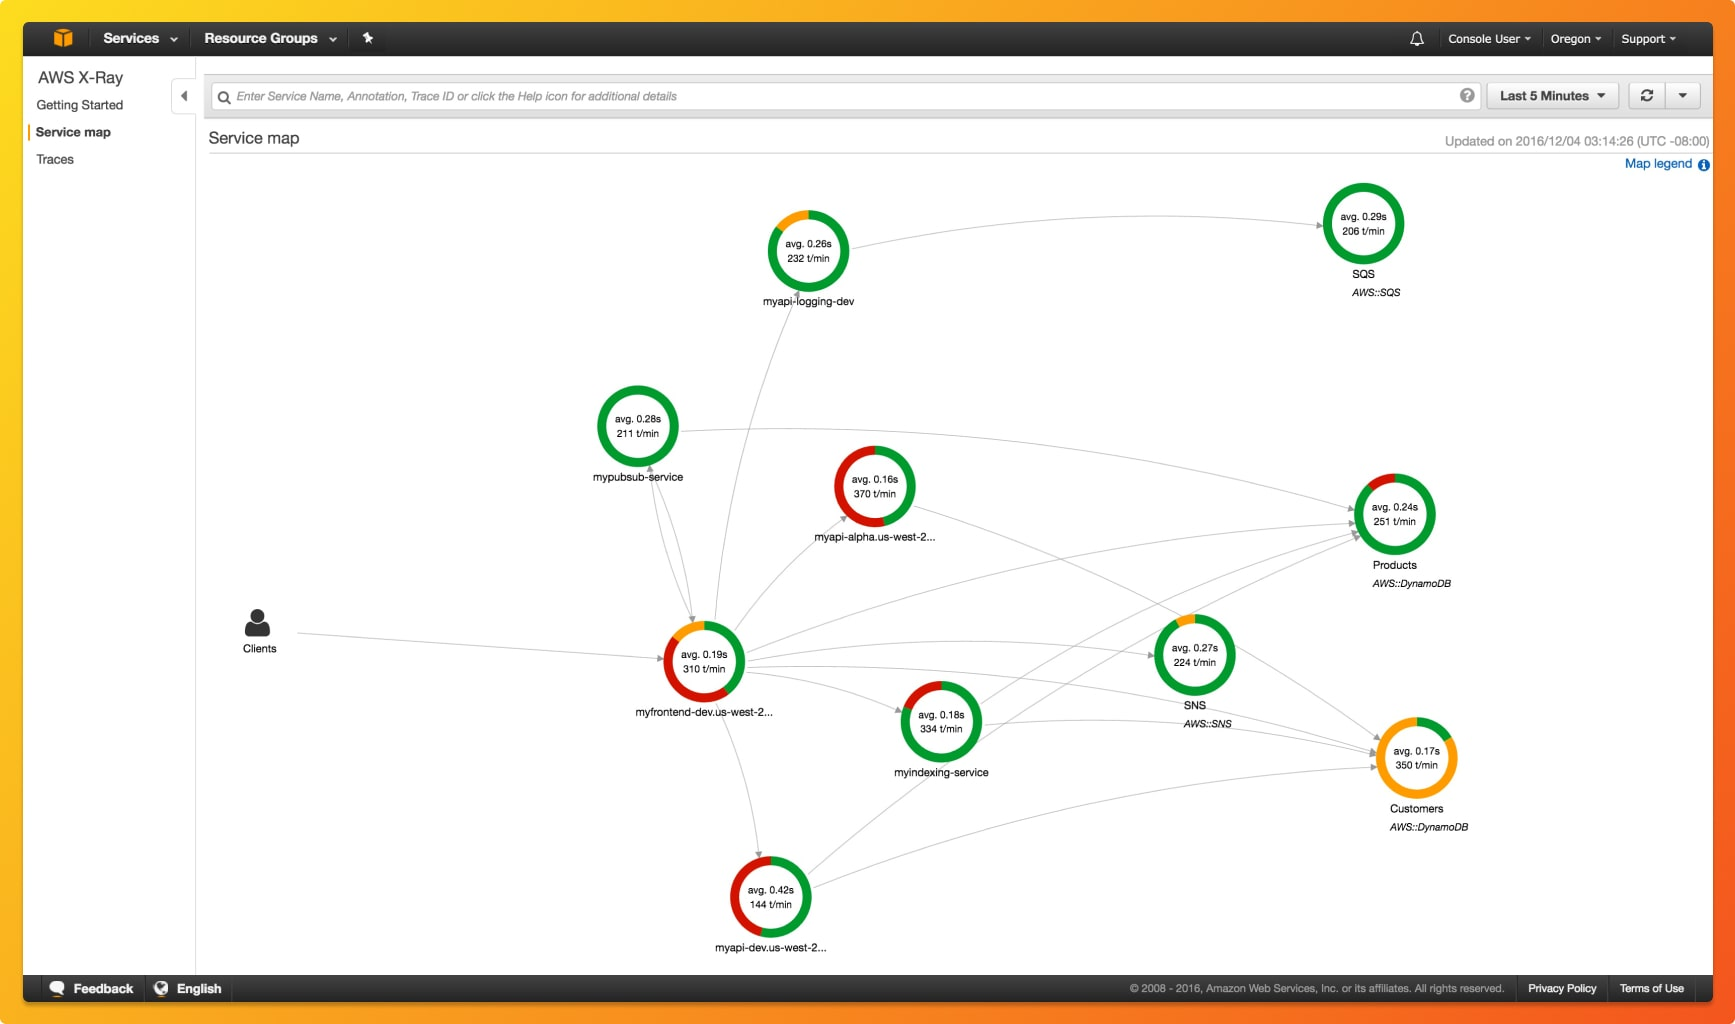 Service maps give an overview of how services are connected in your application